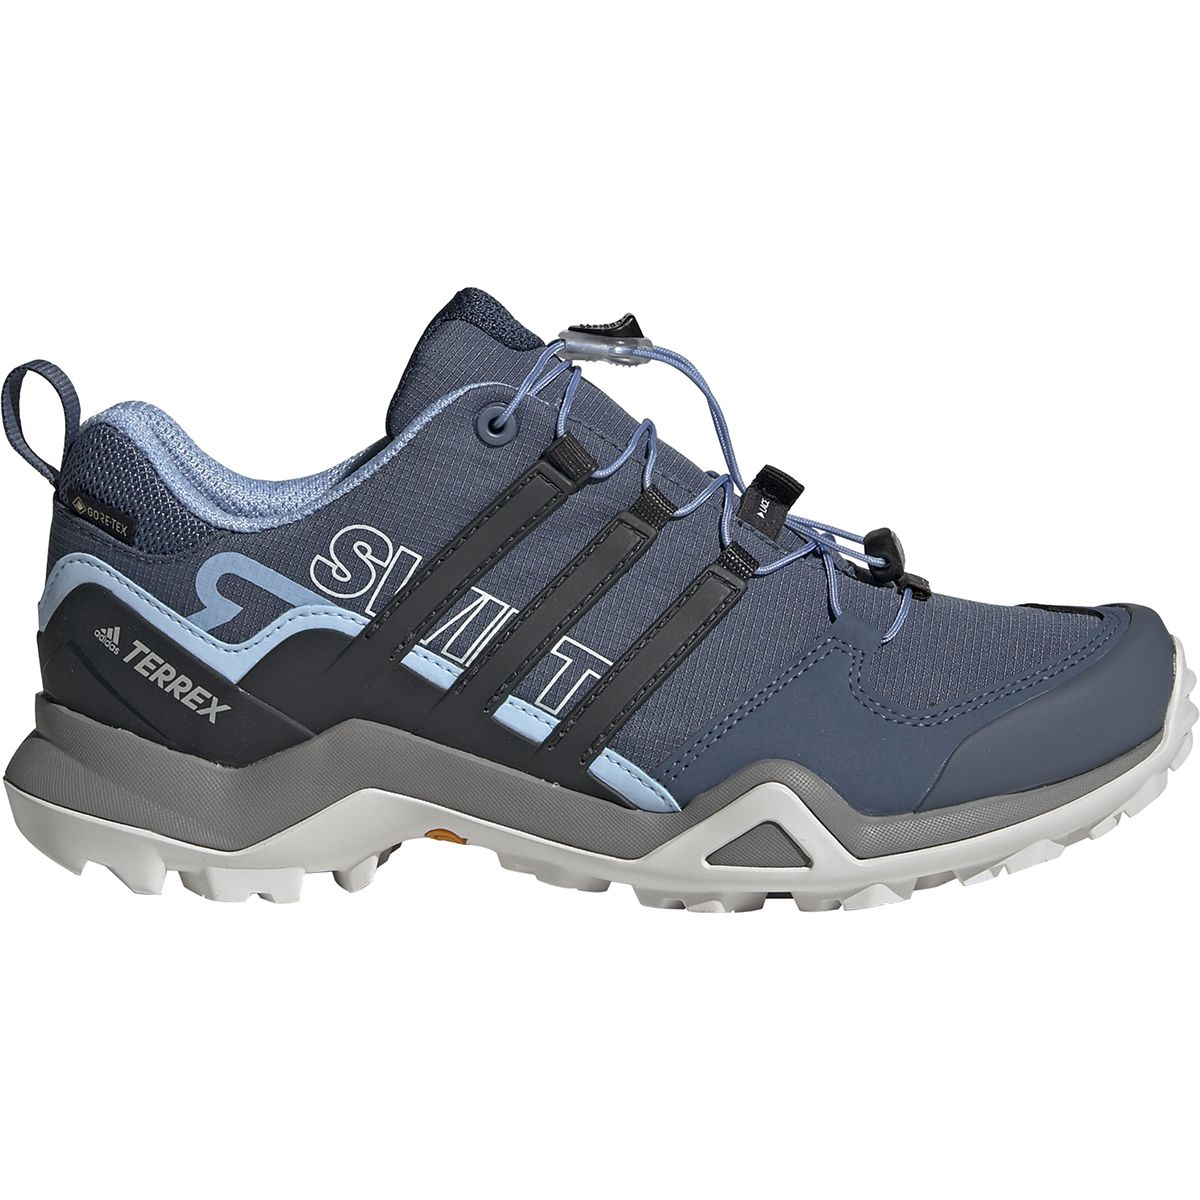 Adidas Outdoor Terrex Swift R2 GTX Hiking Shoe - Women's ...